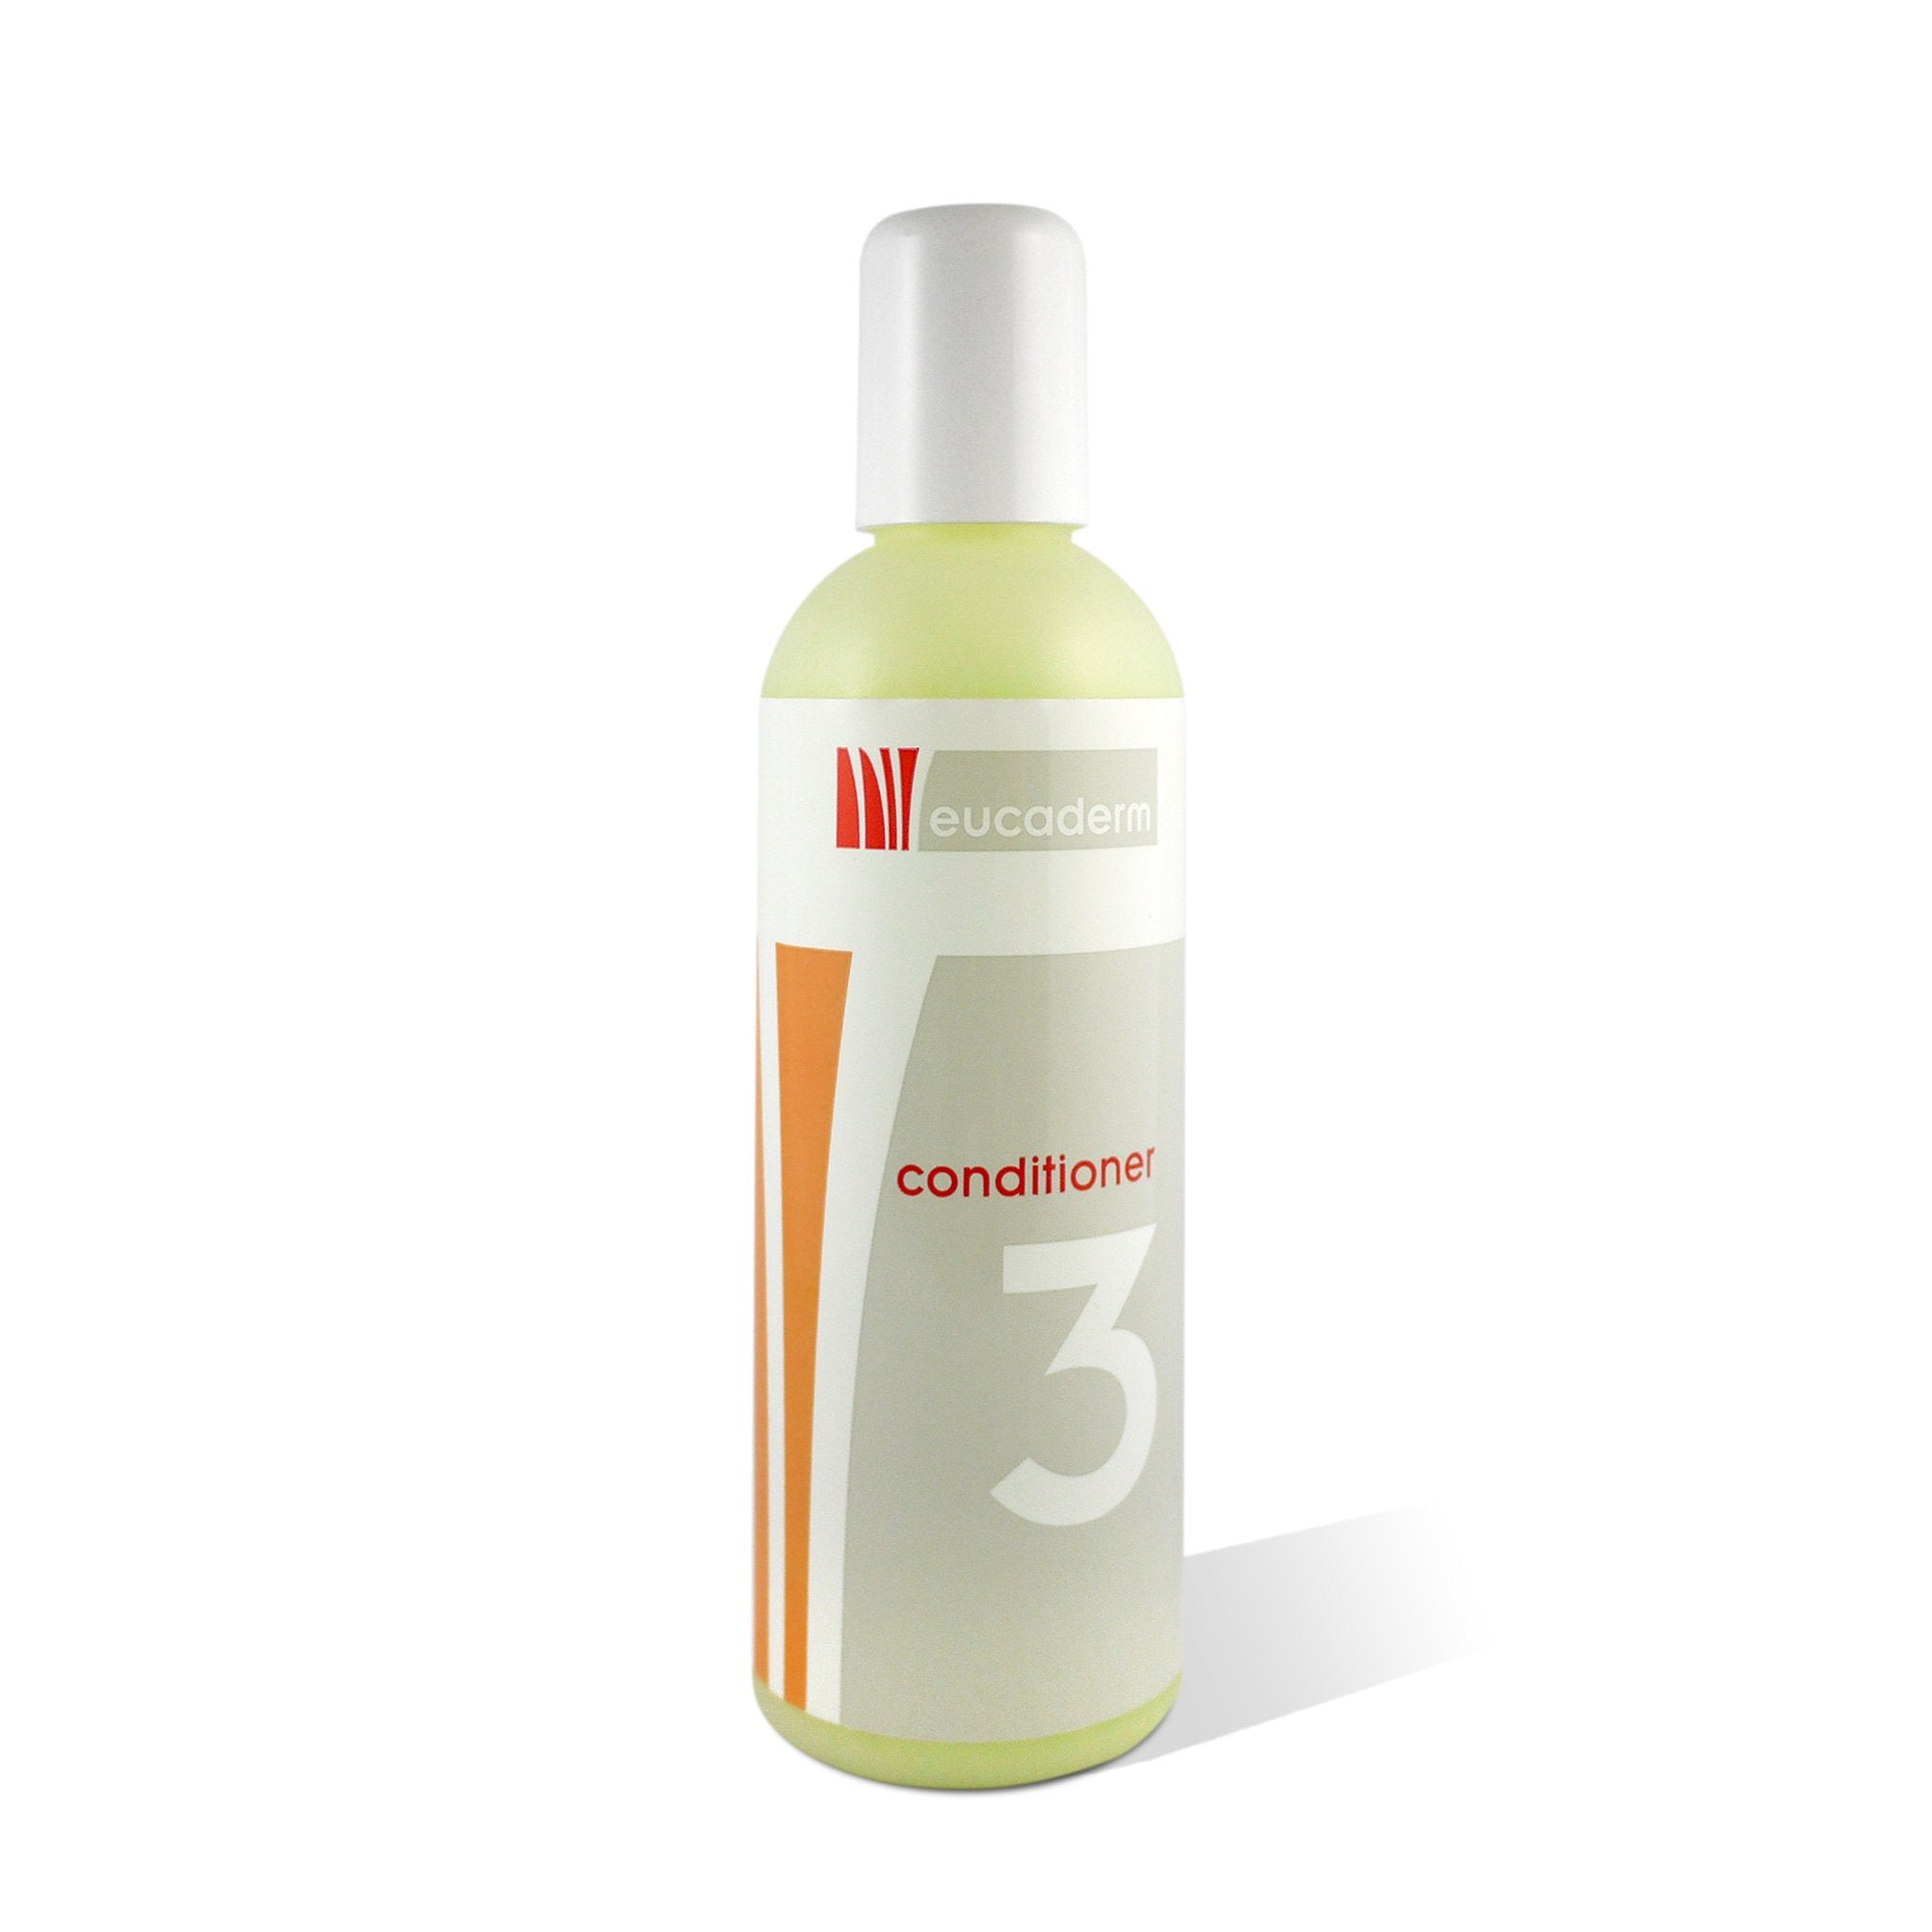 Eucaderm Conditioner No 3 (200ml)